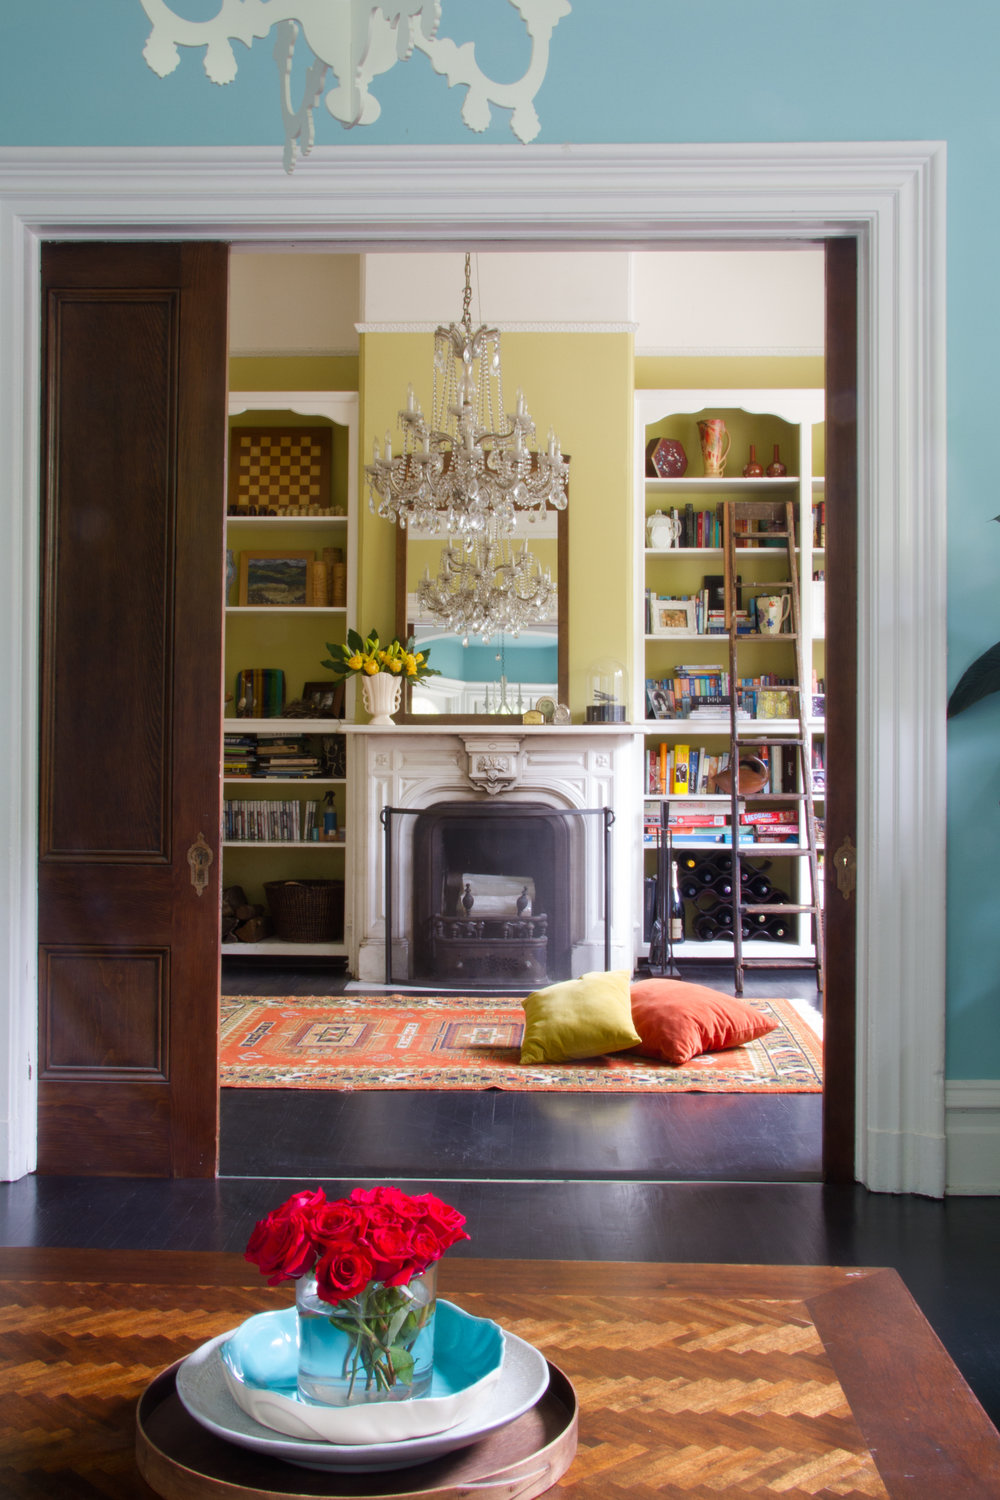 (8/21) The library's original pocket doors are one of Lock's favorite details in the house, as is the frequently-used fireplace. The bright blue living room walls in the foreground are painted in  Benjamin Moore  How Blue Am I.